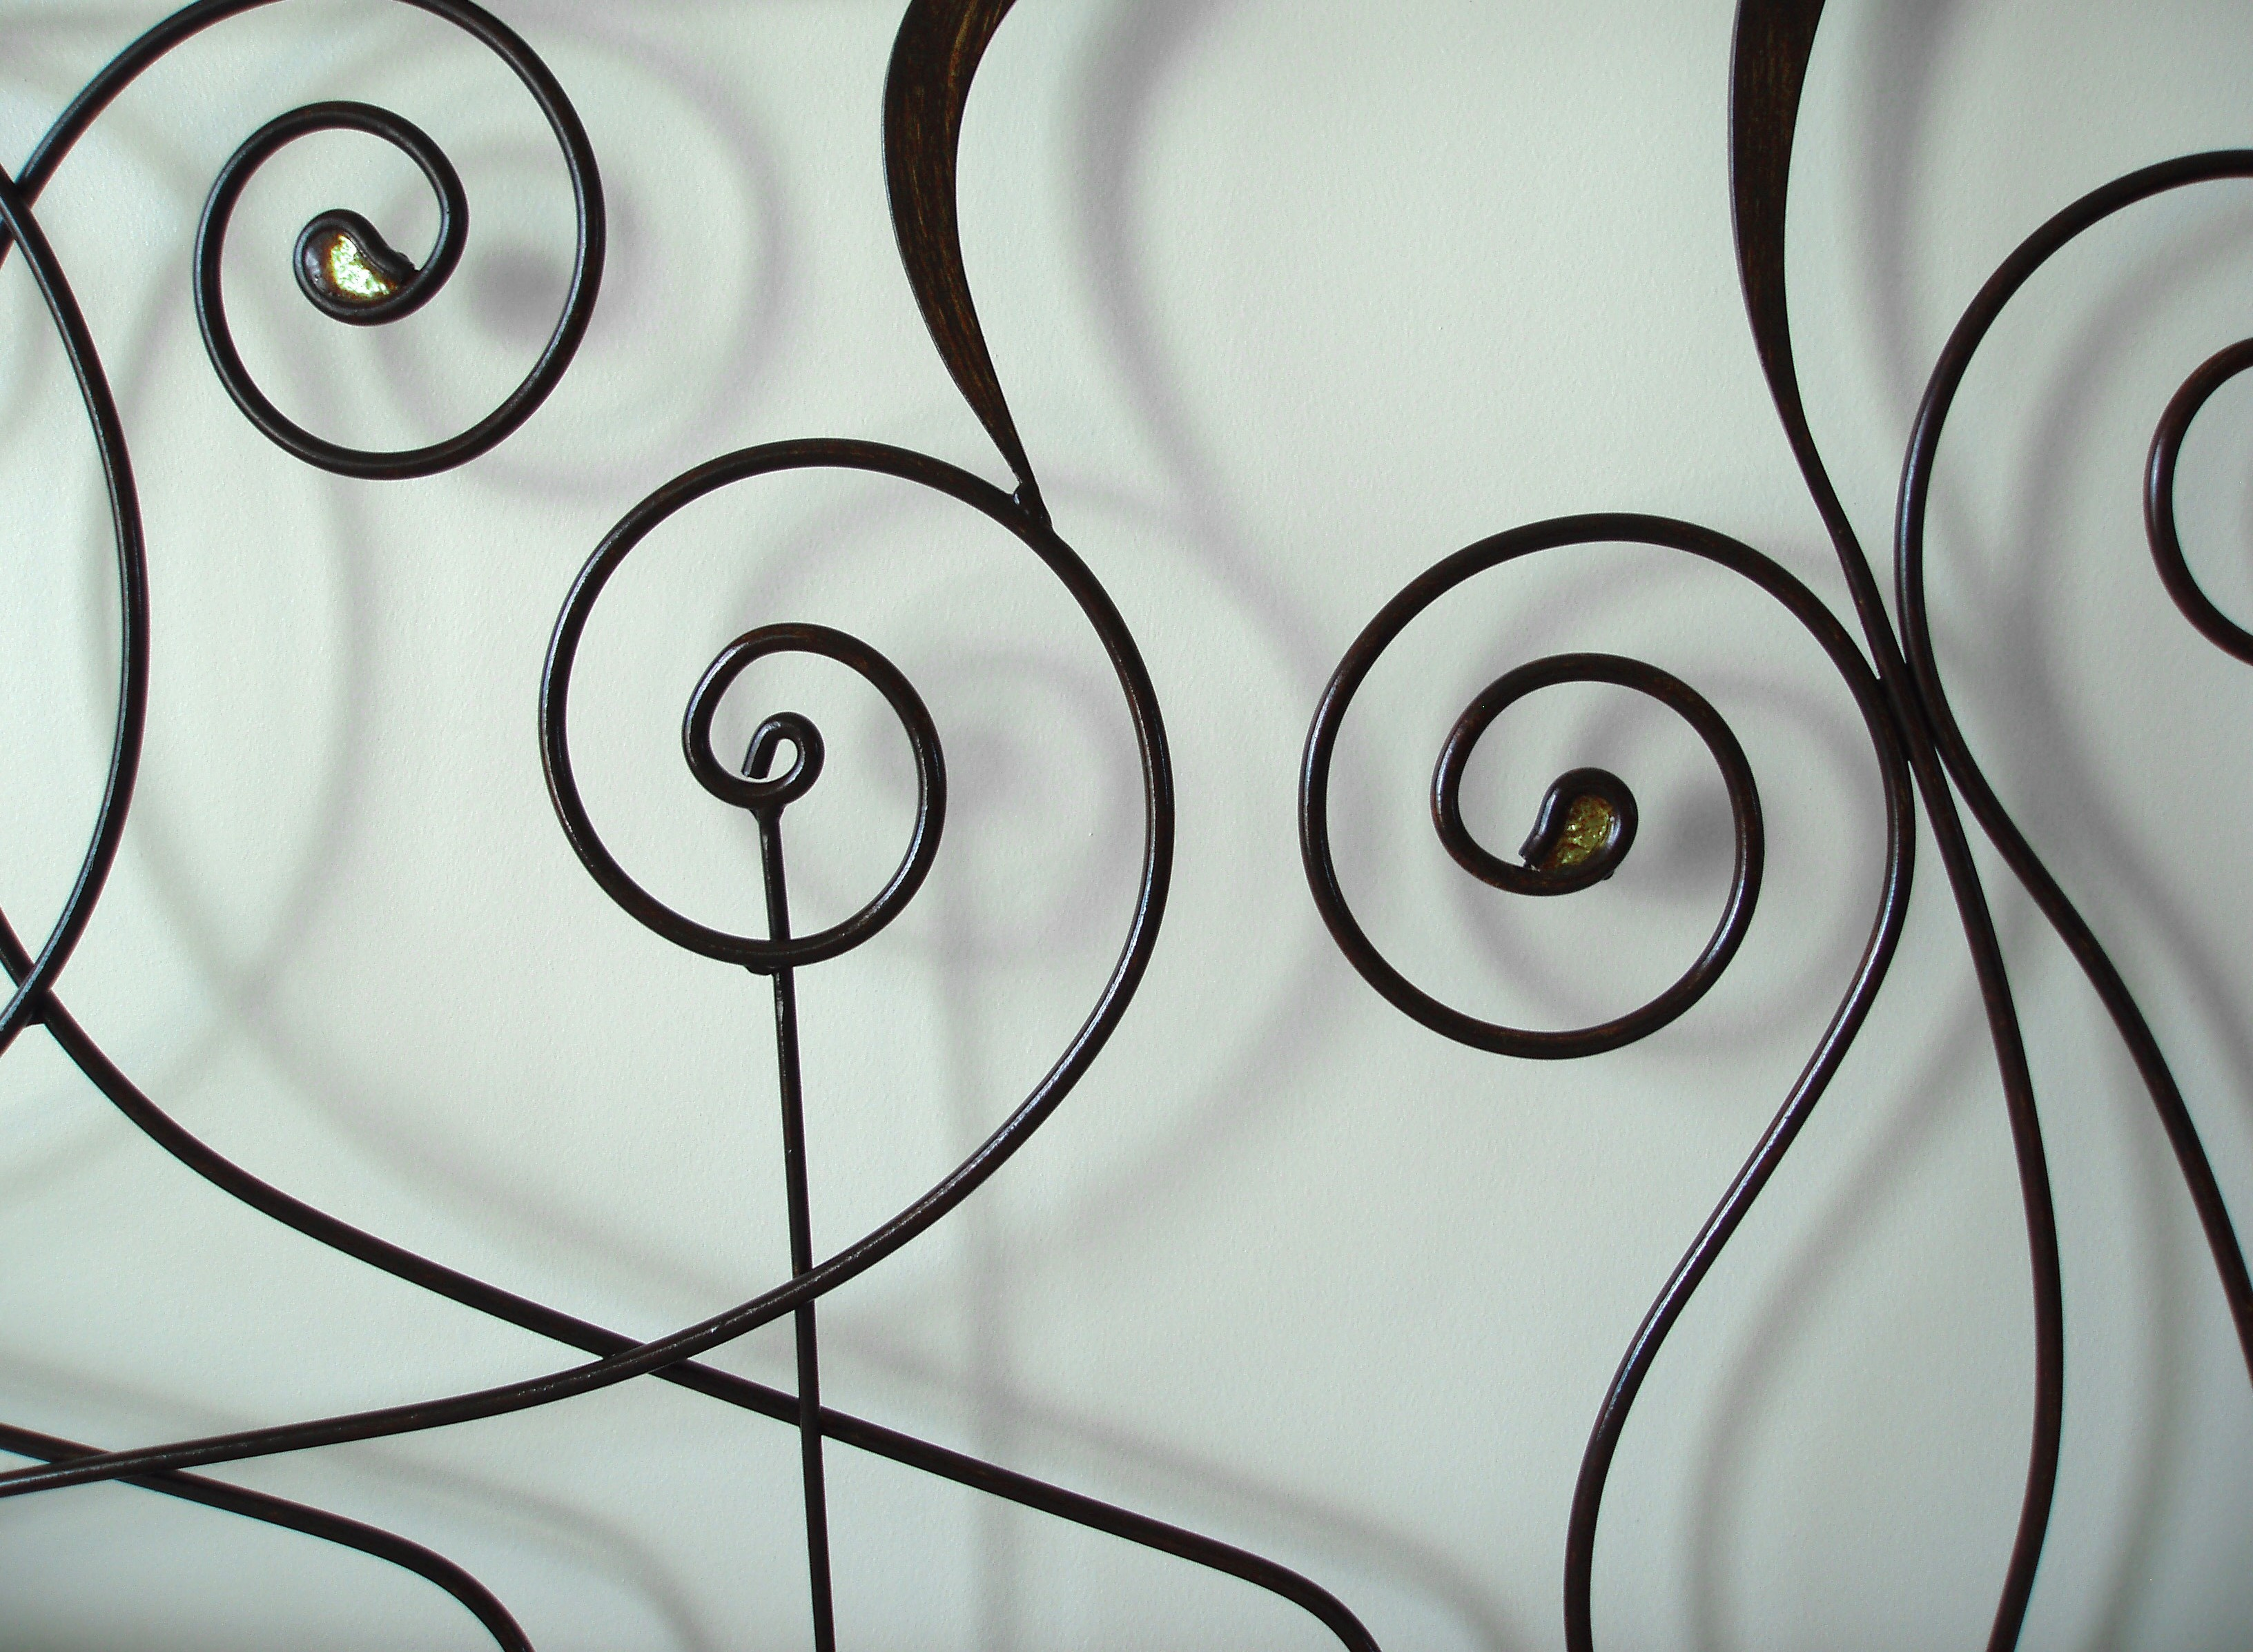 arabesque metal spiral shapes